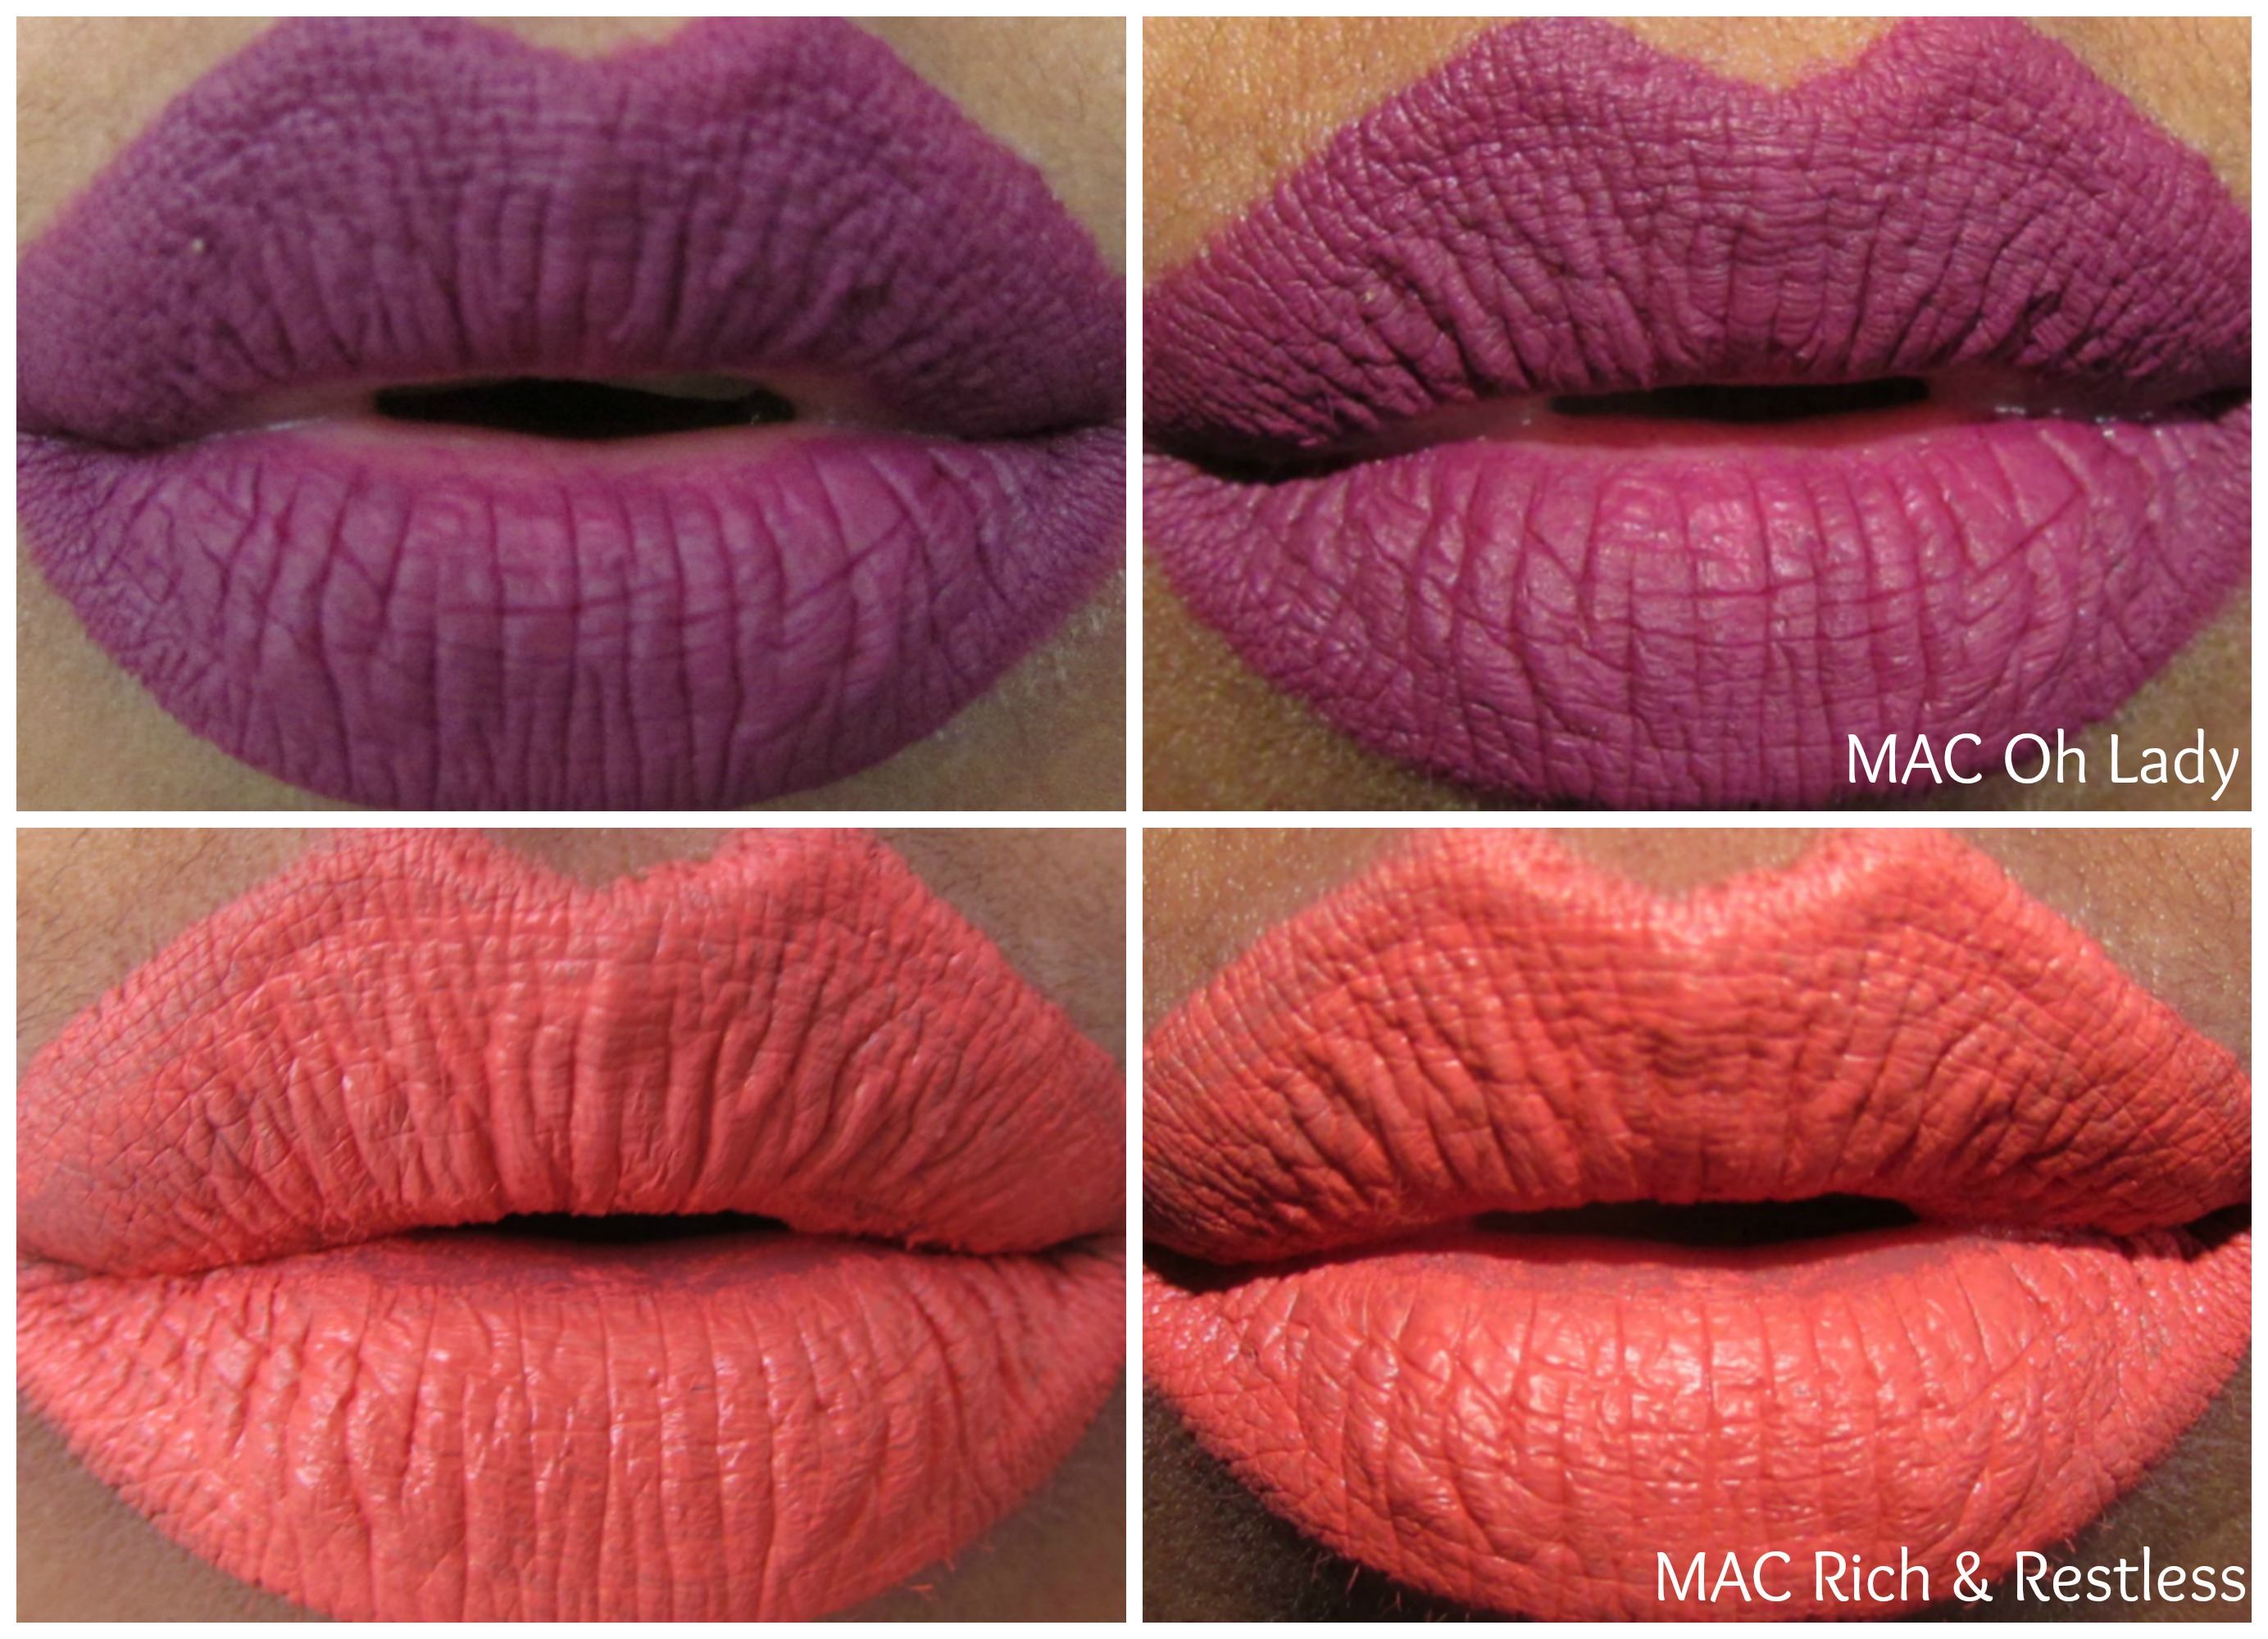 M∙A∙C RETRO MATTE LIQUID LIPCOLOUR – OH LADY, RICH & RESTLESS | REVIEW